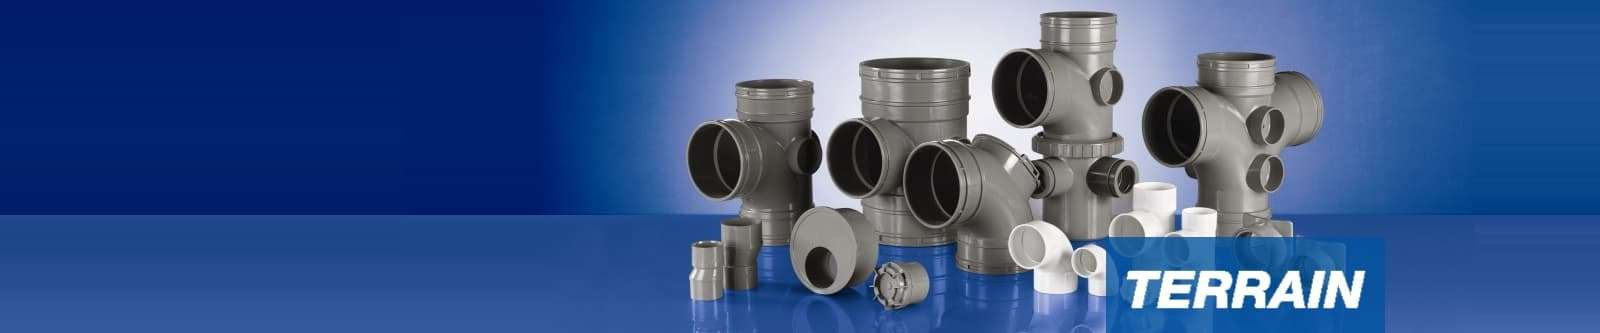 soil pipes, waste pipes / soil & waste drainage solutions